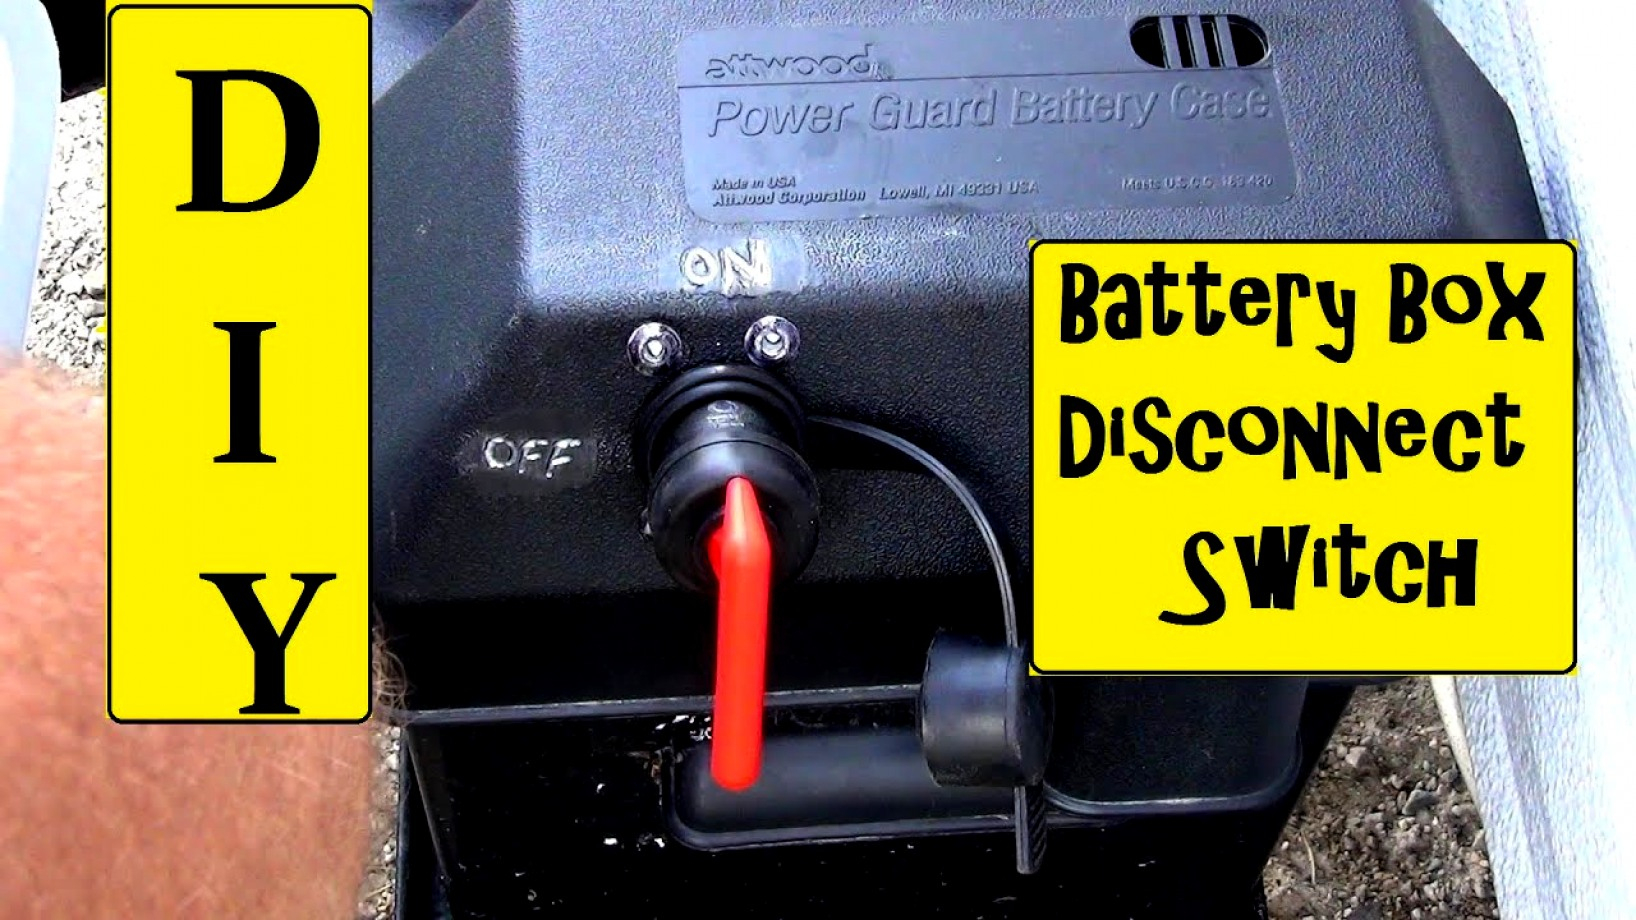 hight resolution of rv battery disconnect switch wiring diagram simple wiring diagram rv battery disconnect switch wiring diagram